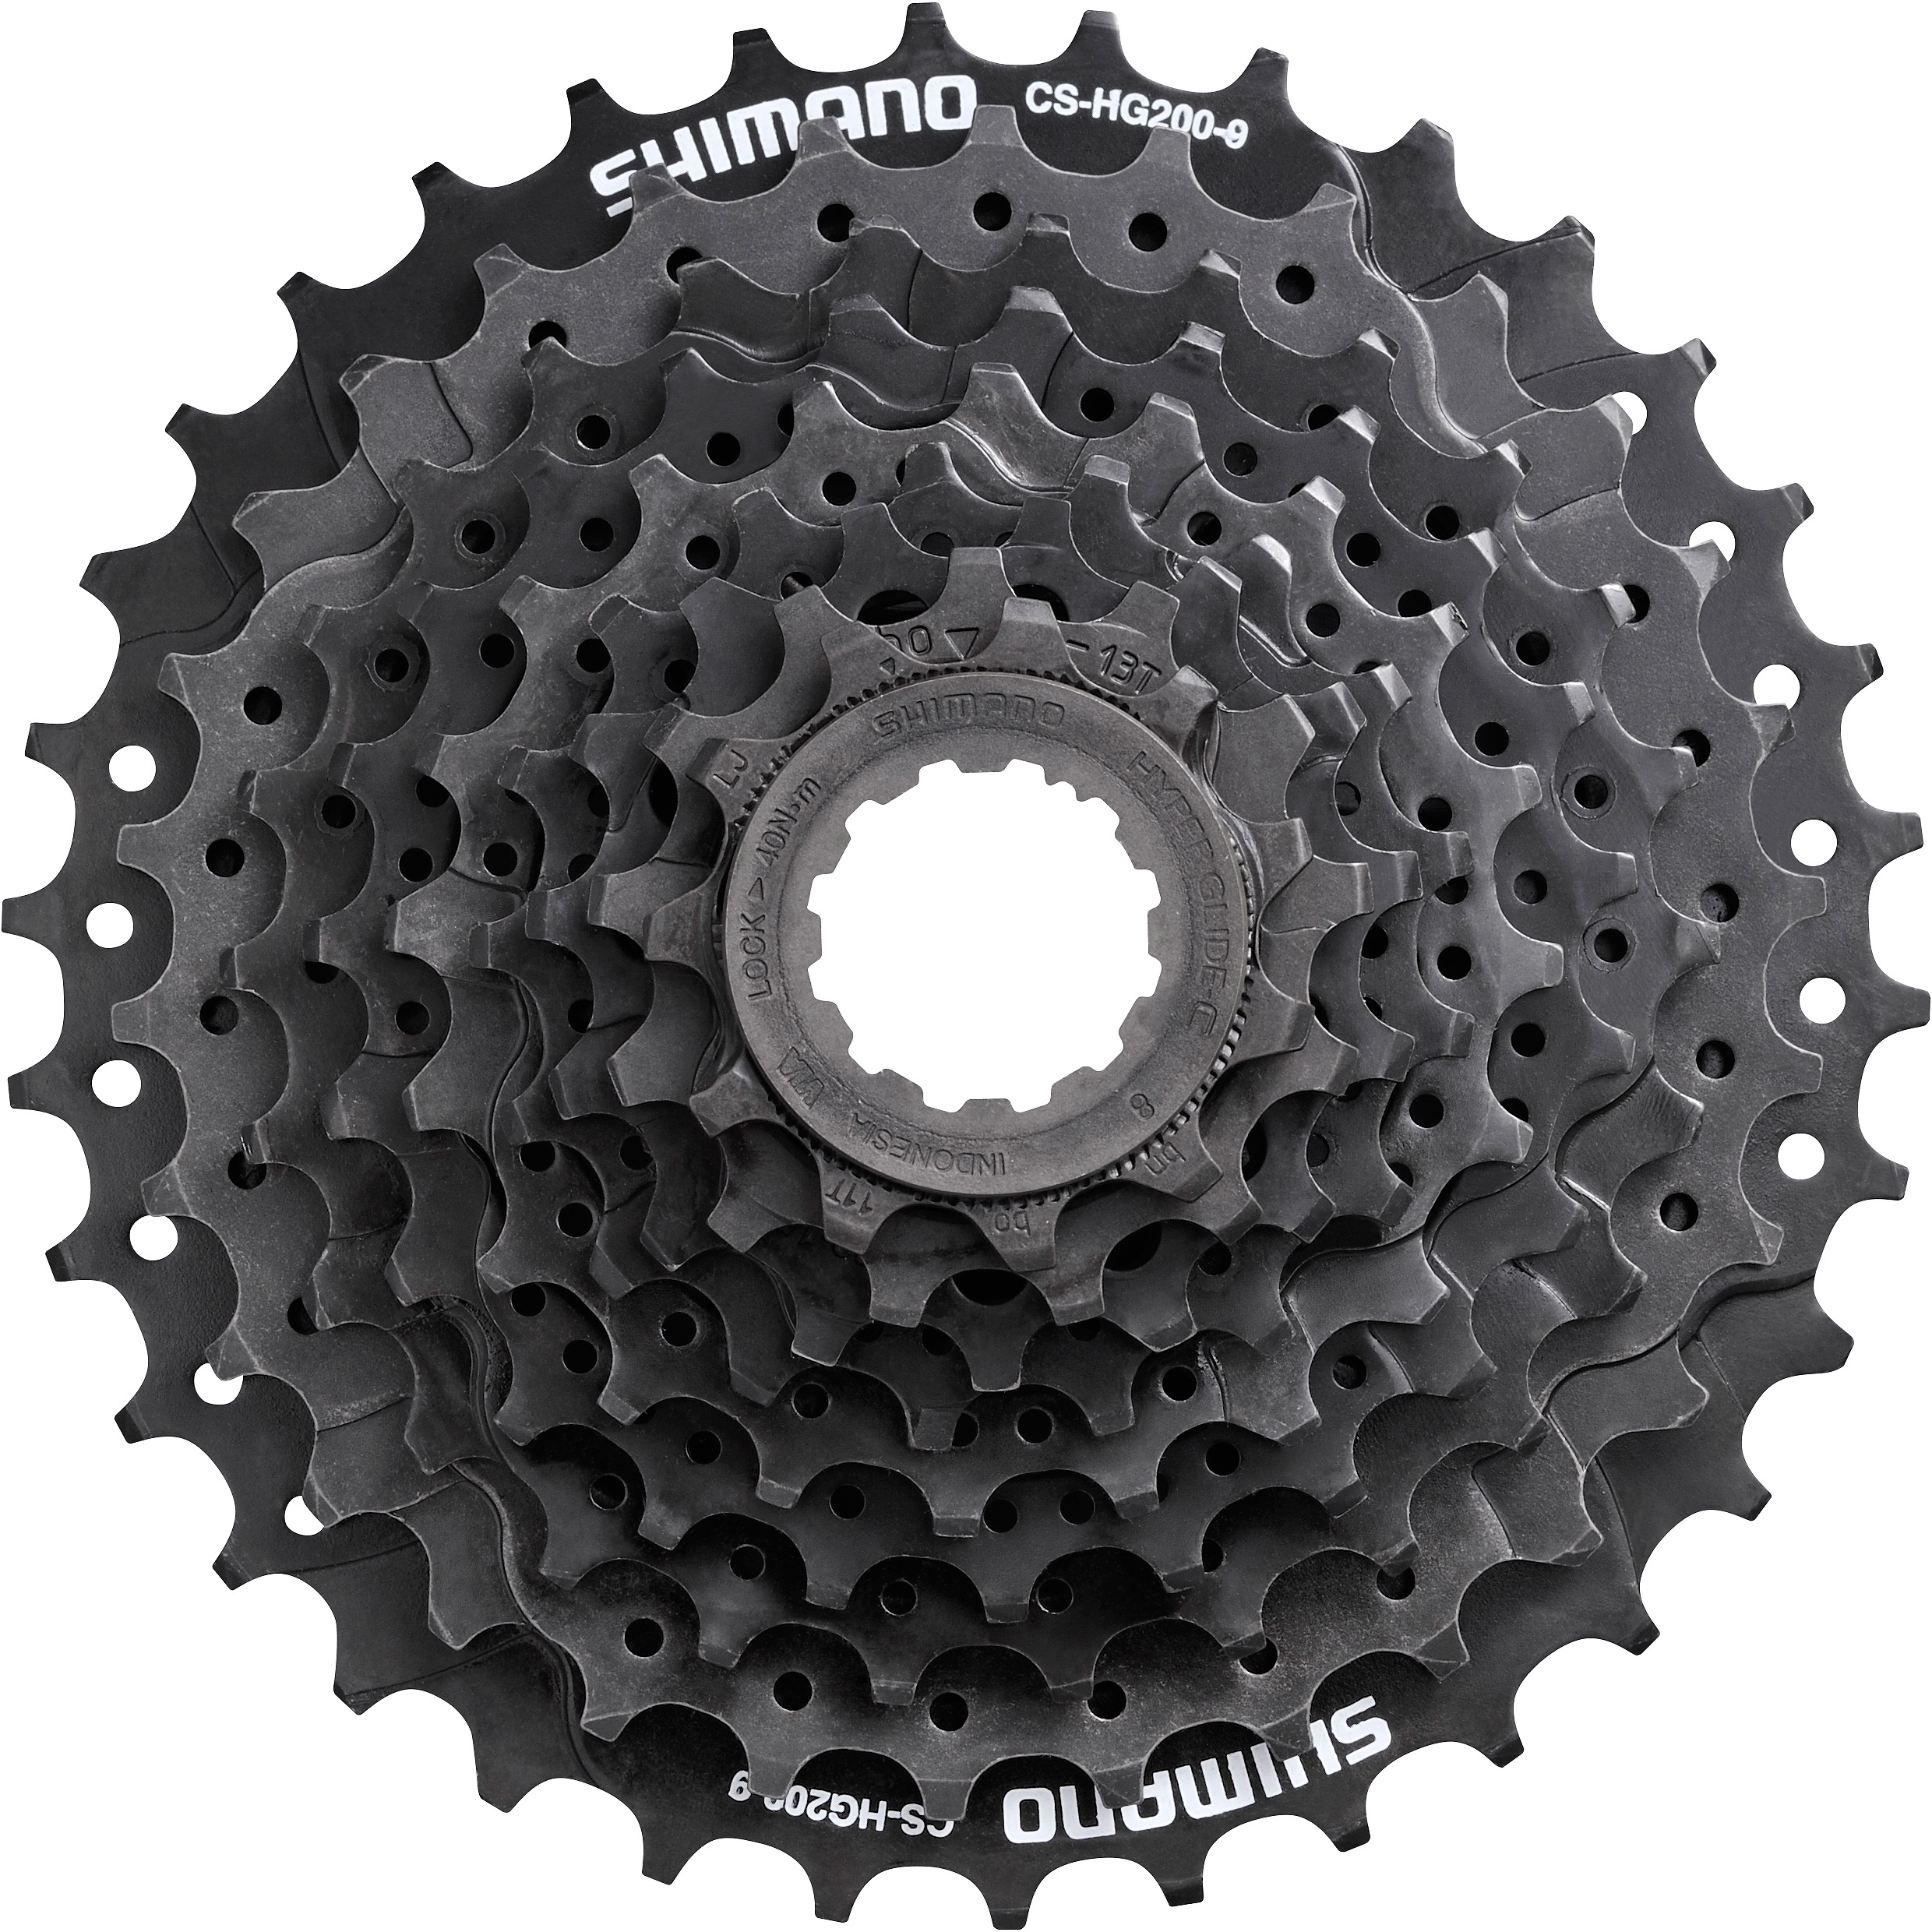 CS-HG201 9-speed cassette 11-34